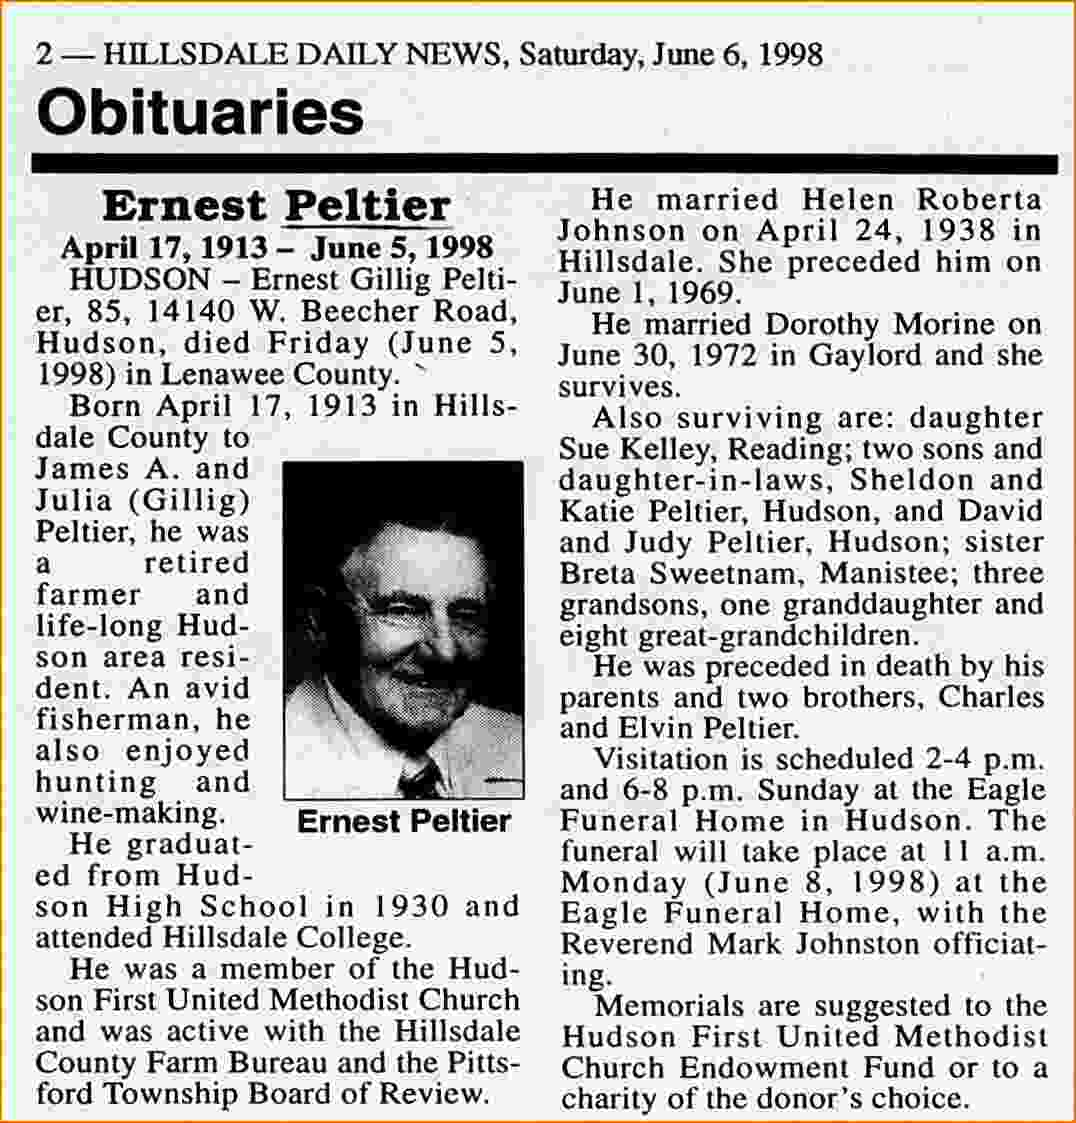 obituary example.jpg